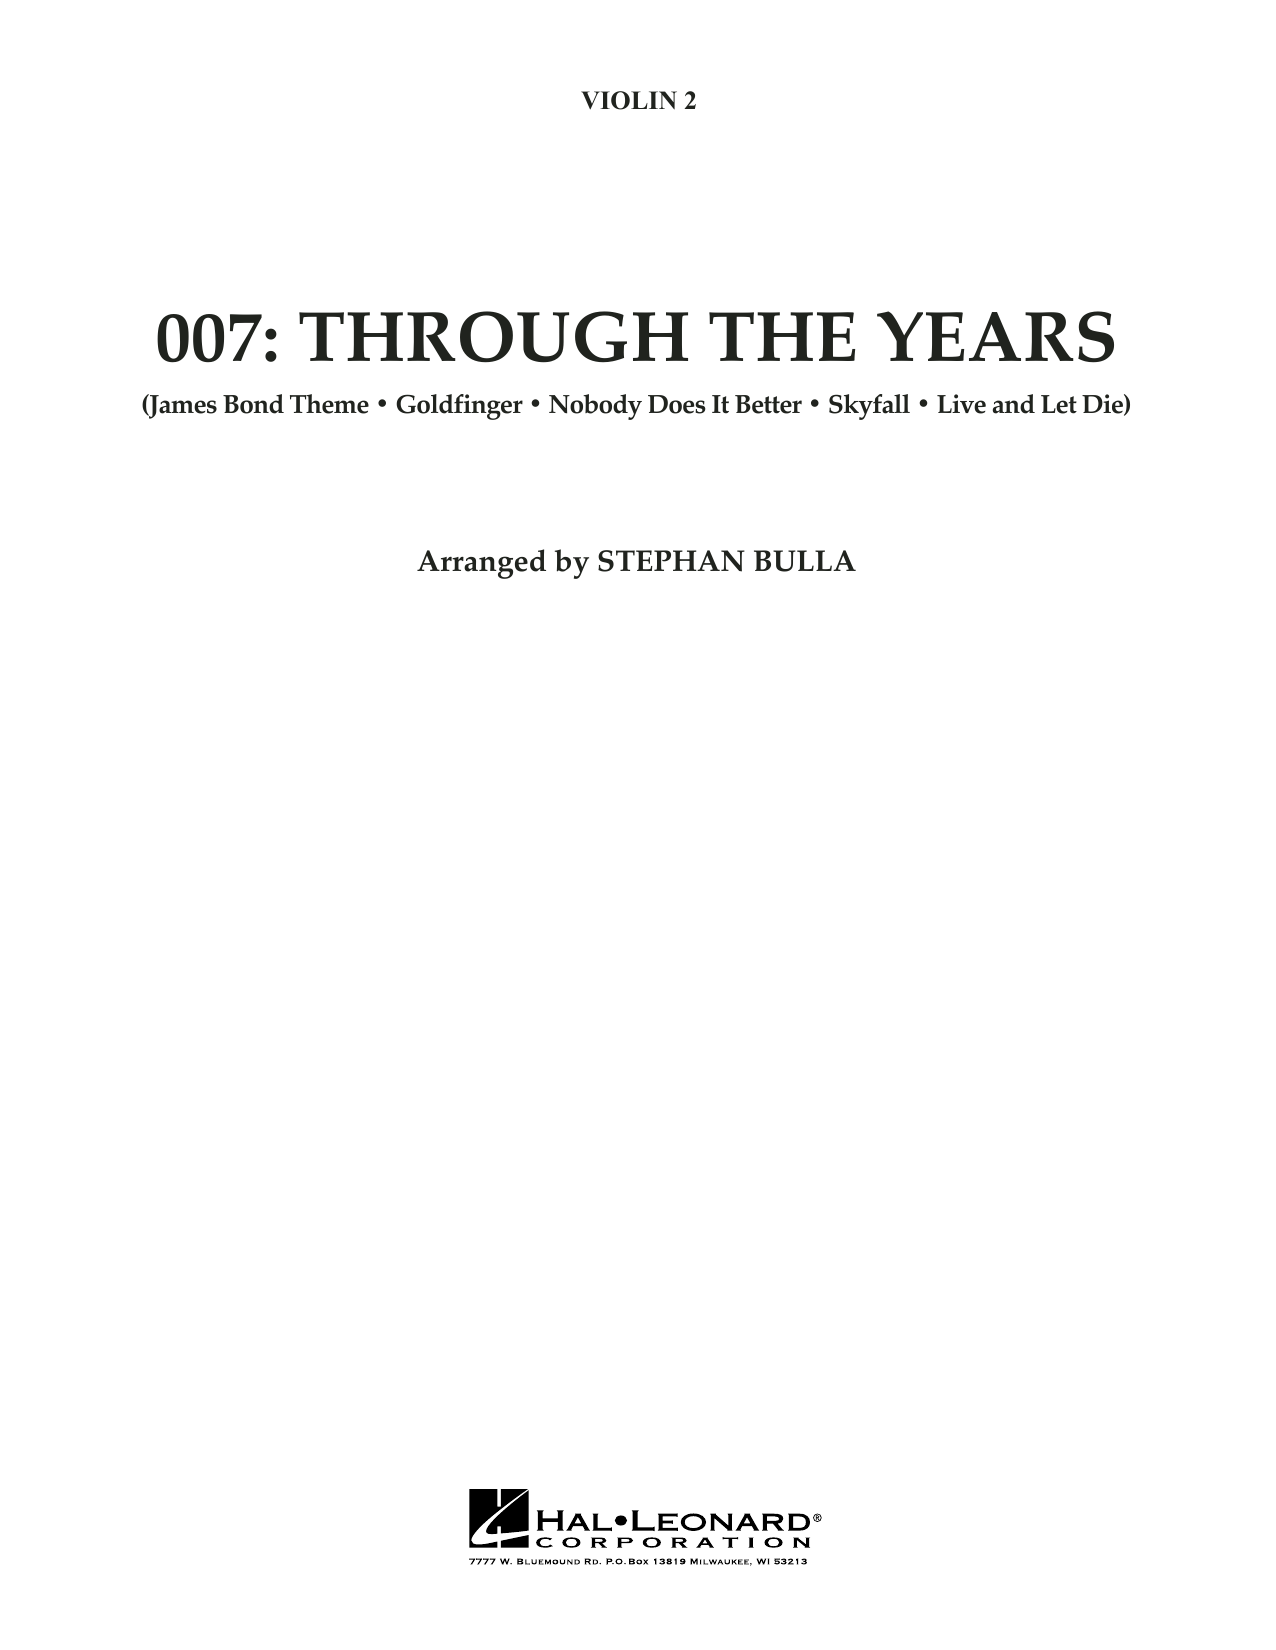 007: Through The Years - Violin 2 (Orchestra)